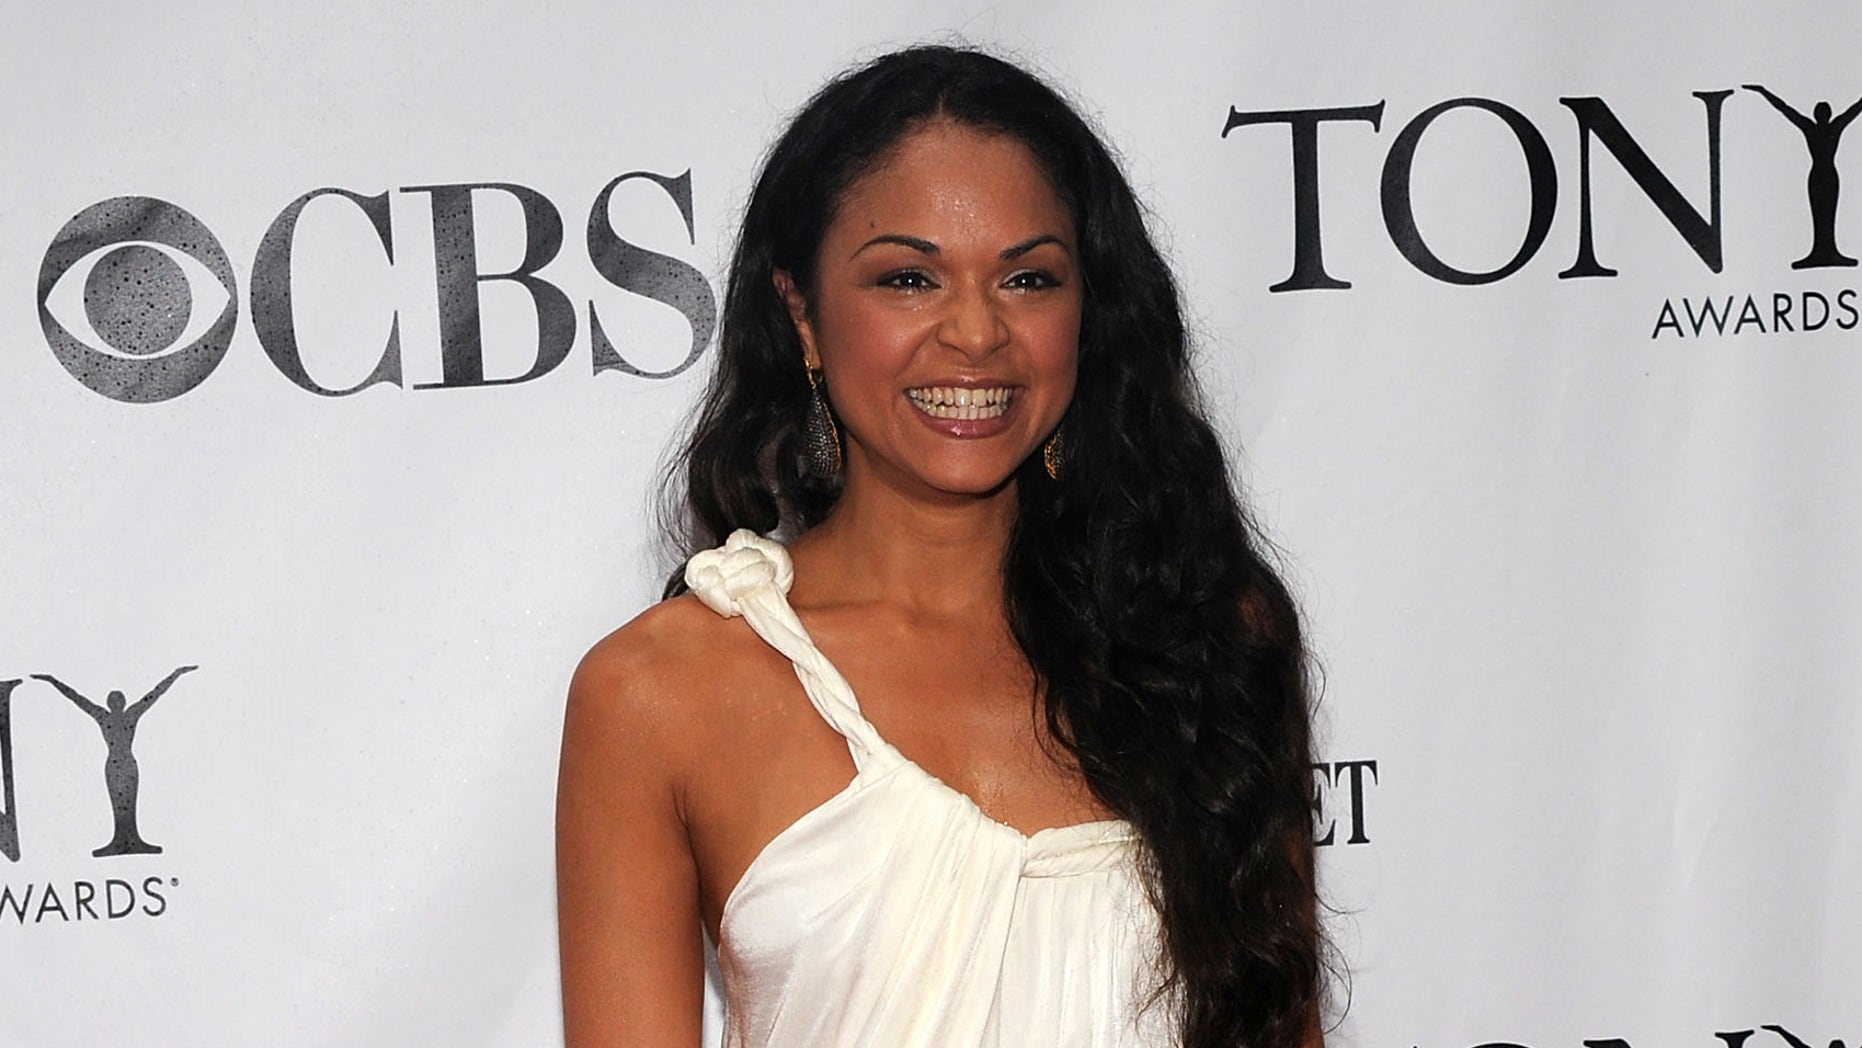 NEW YORK - JUNE 13:  Actress Karen Olivo attends the 64th Annual Tony Awards at Radio City Music Hall on June 13, 2010 in New York City.  (Photo by Bryan Bedder/Getty Images)